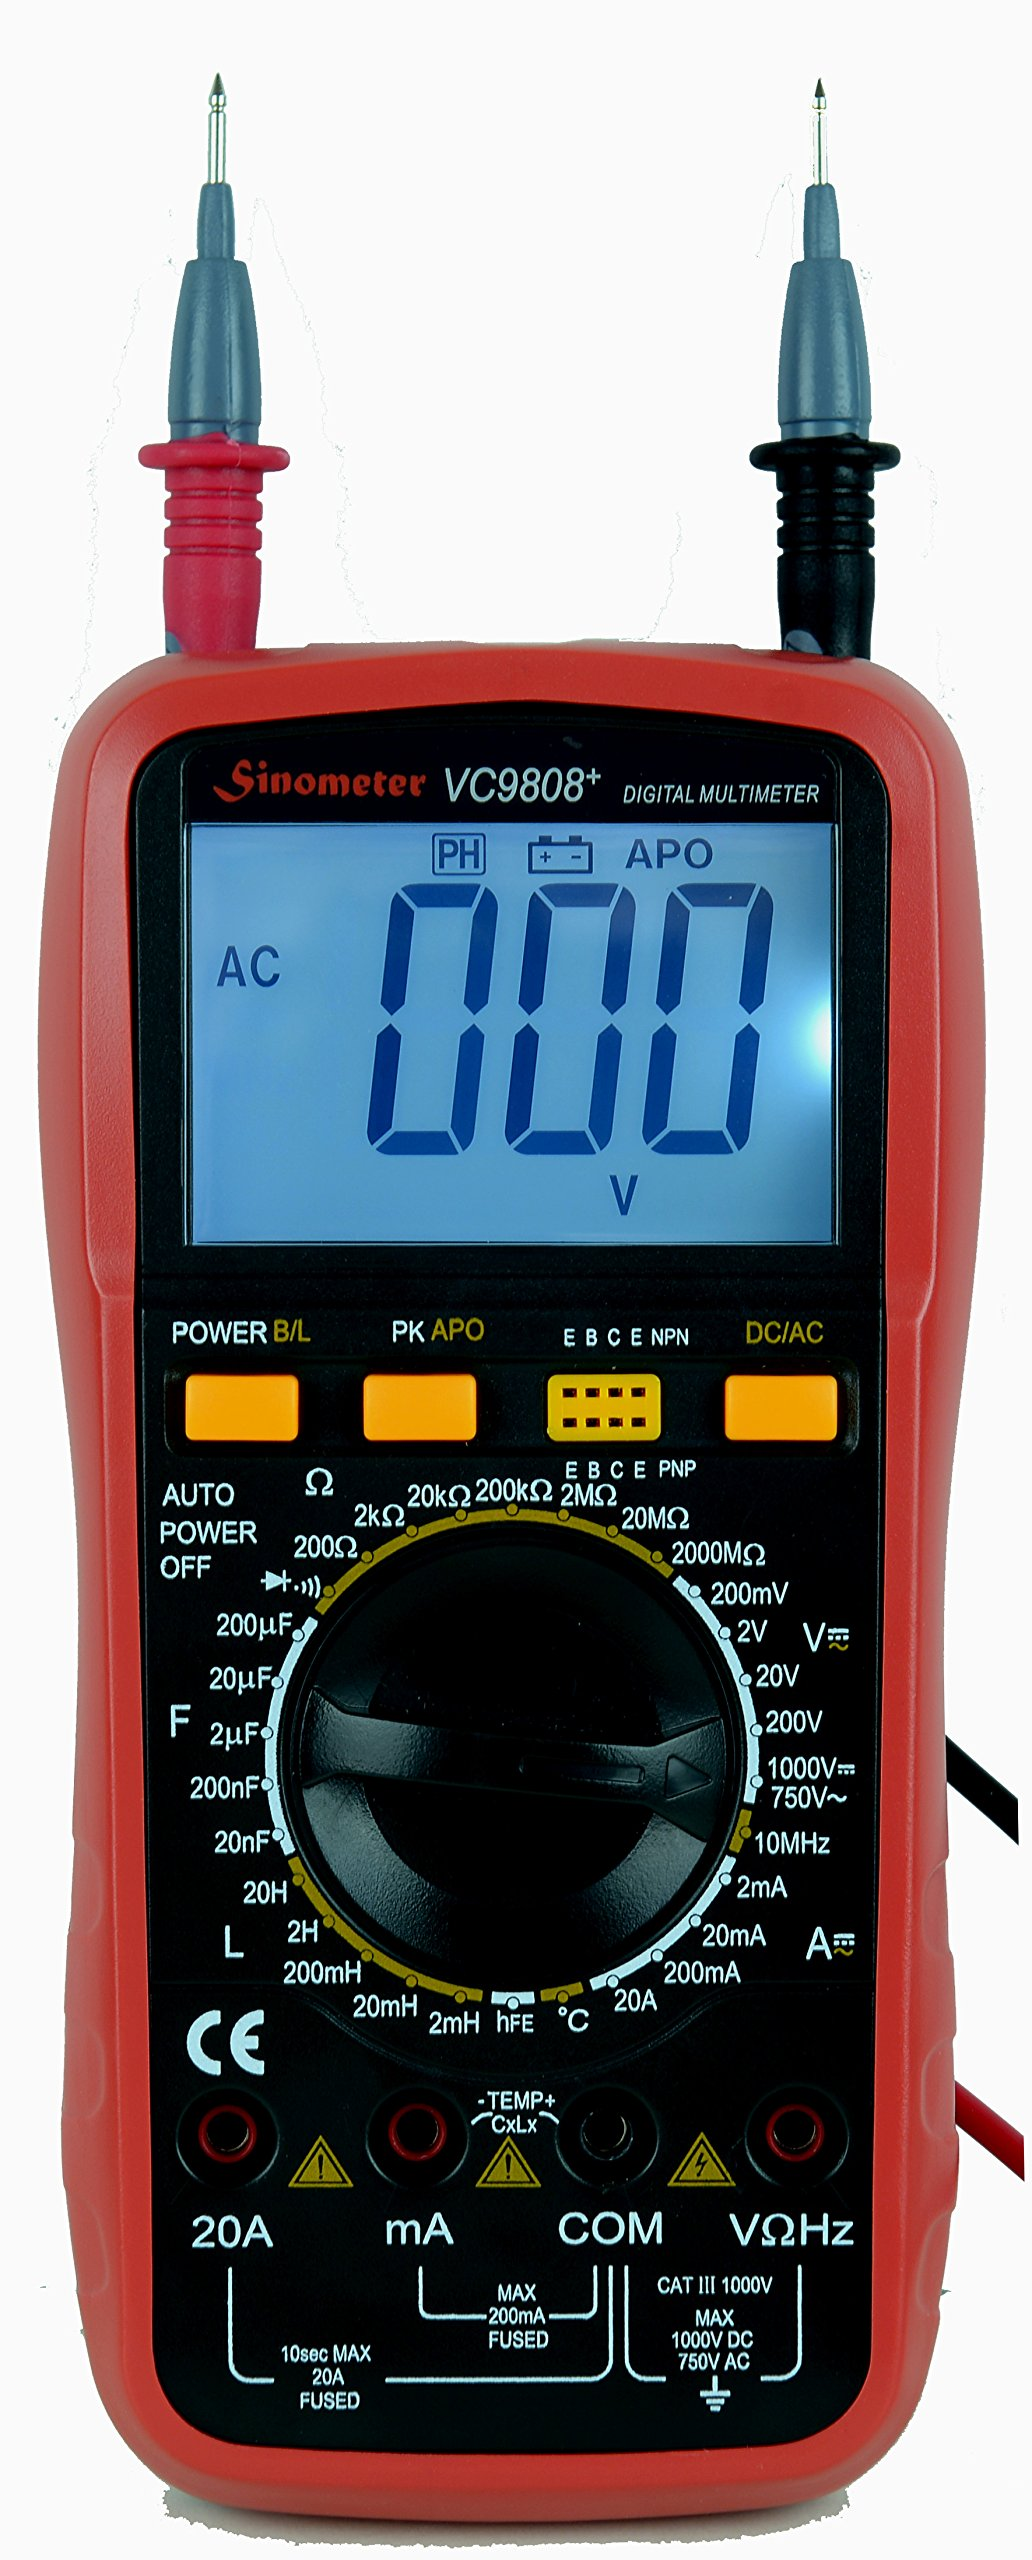 Sinometer VC9808 30-Range Digital Multimeter & LCR Meter, A Professional Multimeter for L C R Measurement by Sinometer